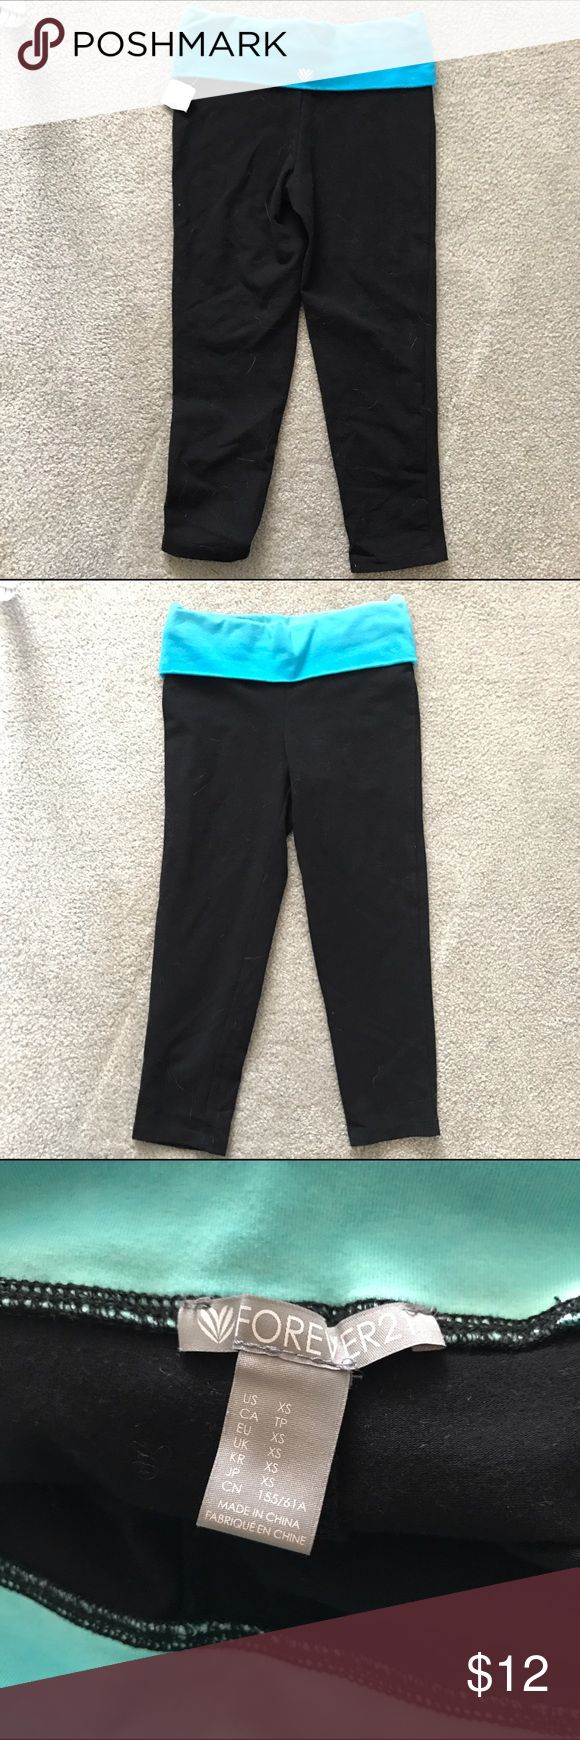 New with Tags Capris with WaistBand New capri leggings from forever 21 with ombré blue waist band. Still have tags, price ripped off because it was a gift. No damages just not my size. Size extra small Forever 21 Pants Leggings